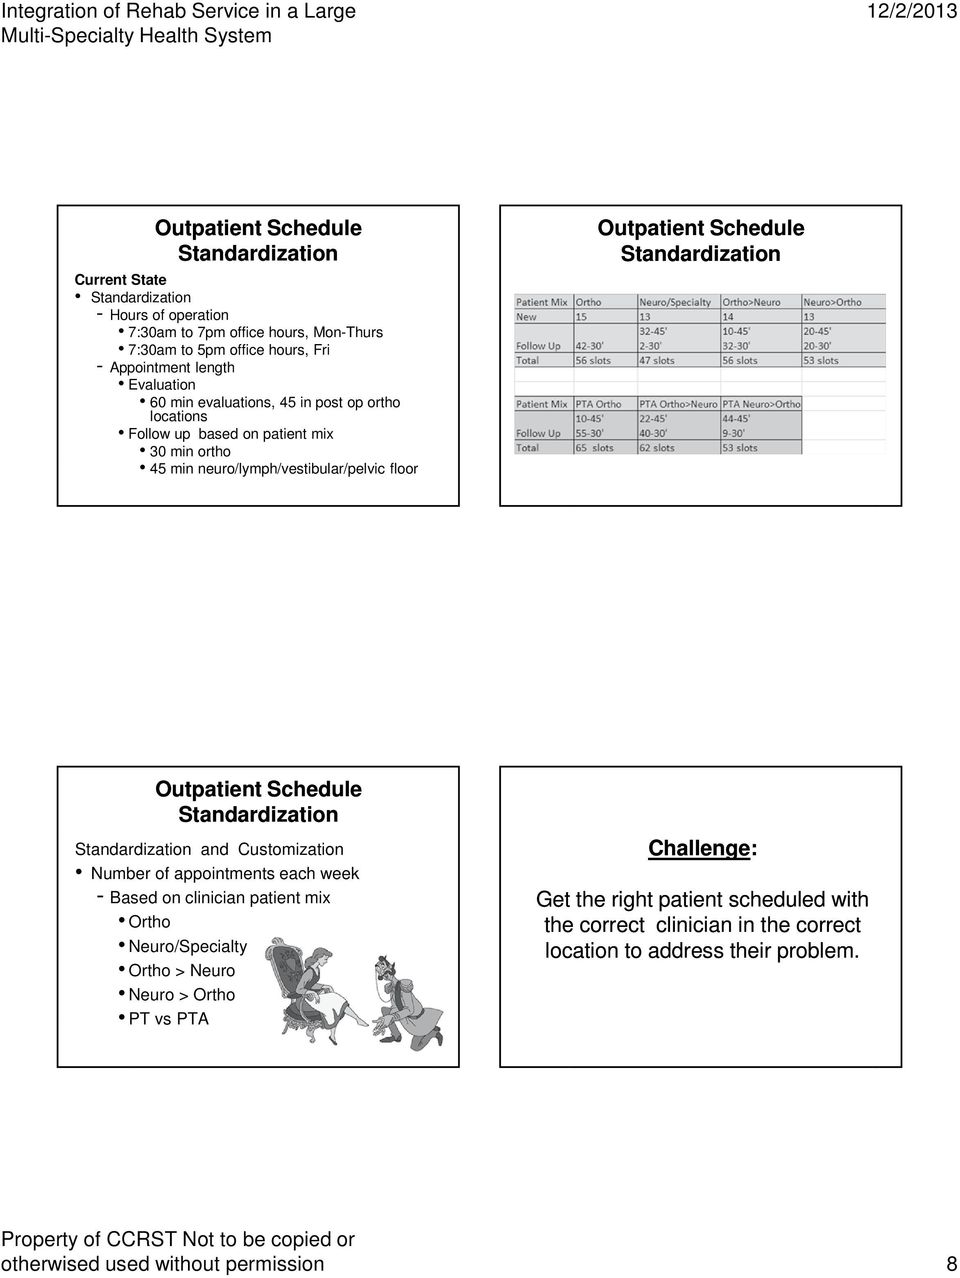 Standardization Outpatient Schedule Standardization Standardization and Customization Number of appointments each week - Based on clinician patient mix Ortho Neuro/Specialty